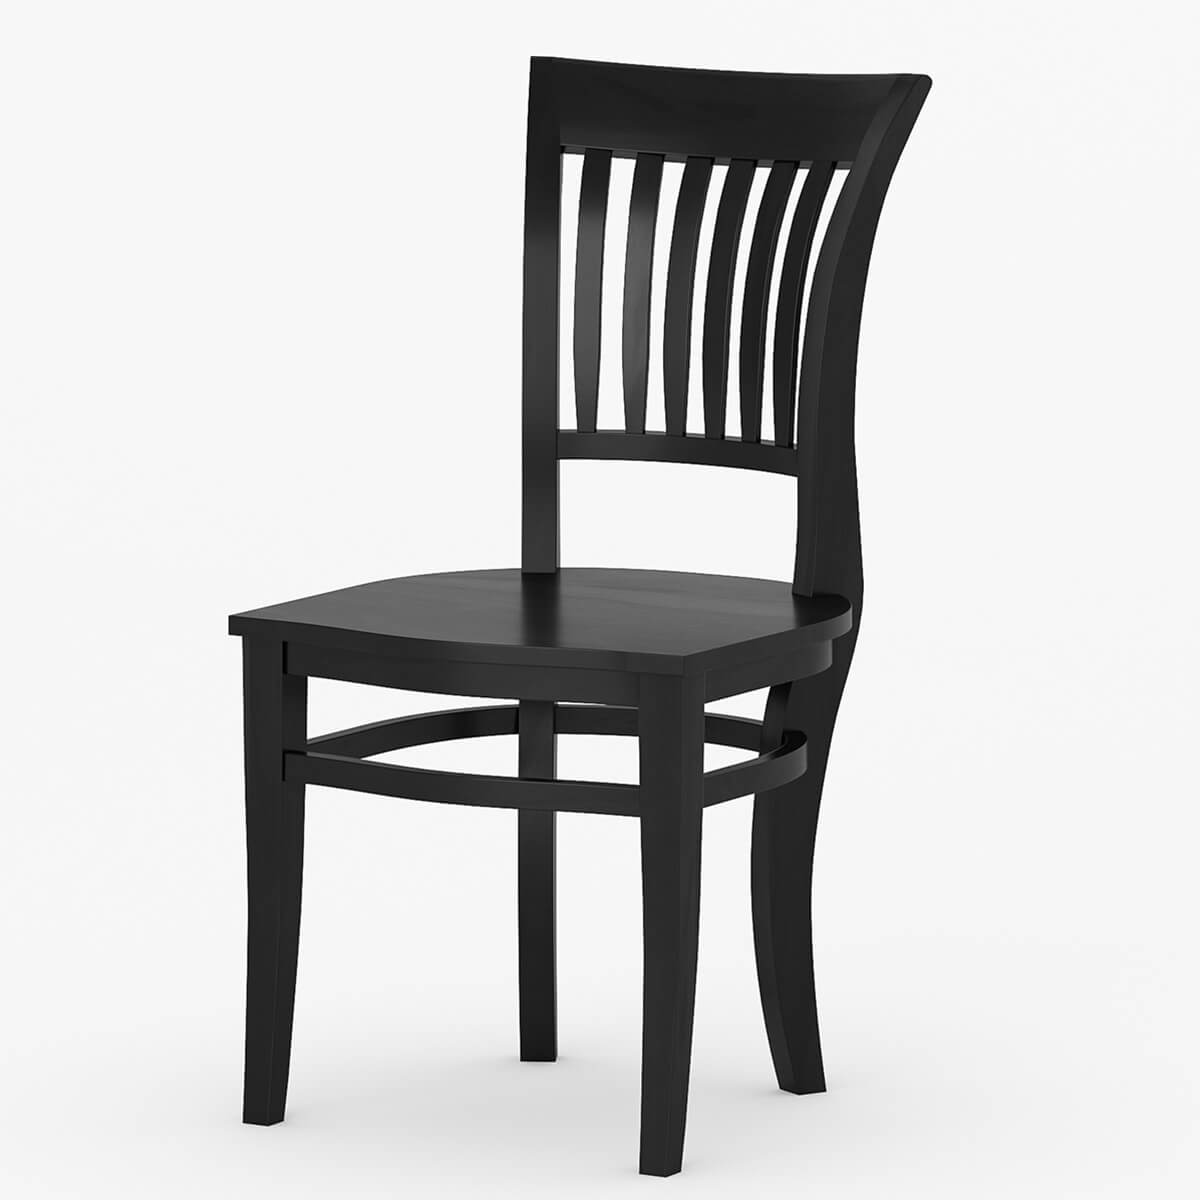 Sierra nevada solid wood kitchen side dining chair furniture for Kitchen chairs